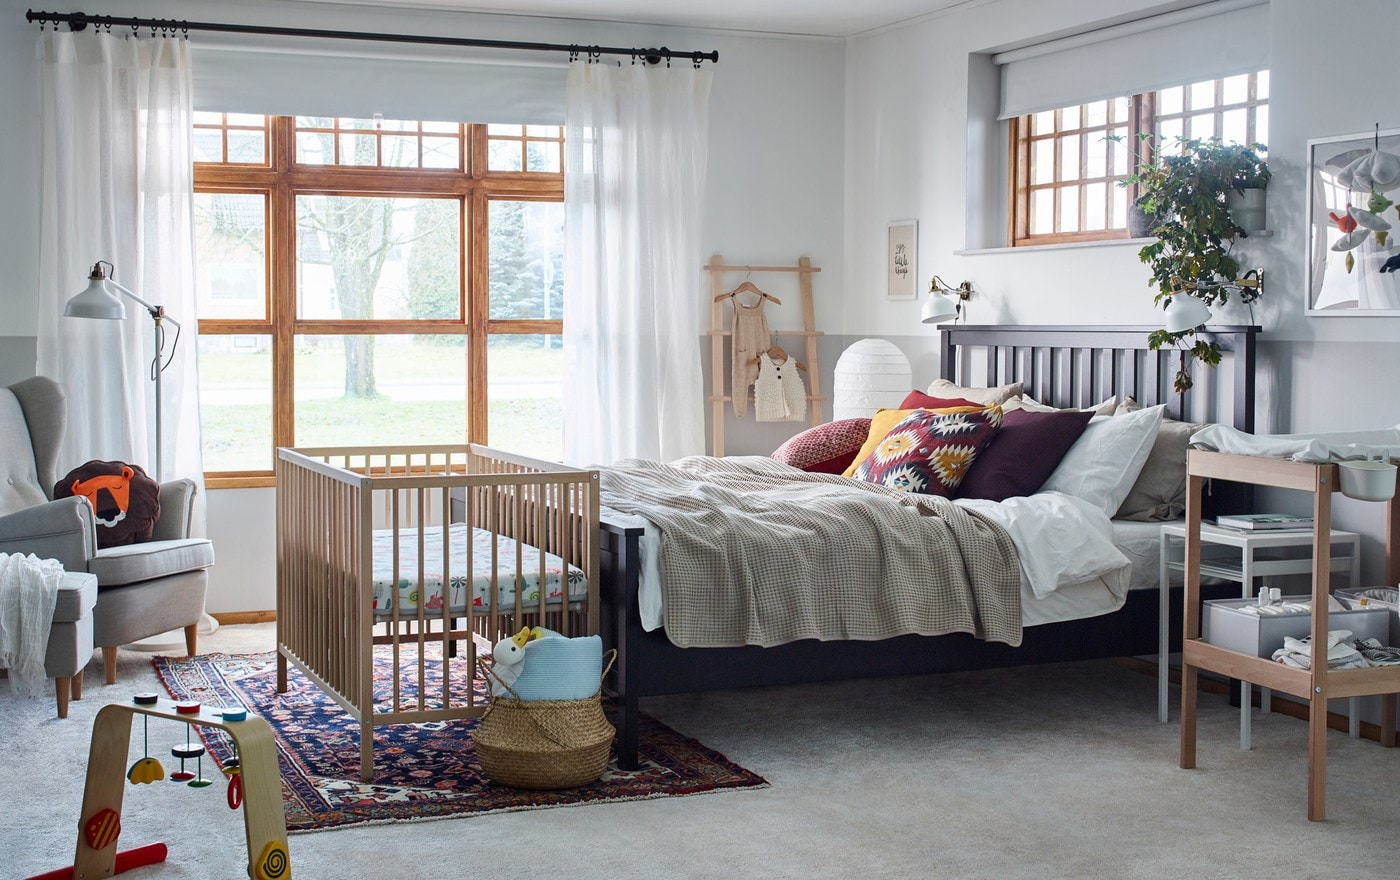 A large white bedroom with wood accents is furnished for a couple and their baby, including a SNIGLAR cot.